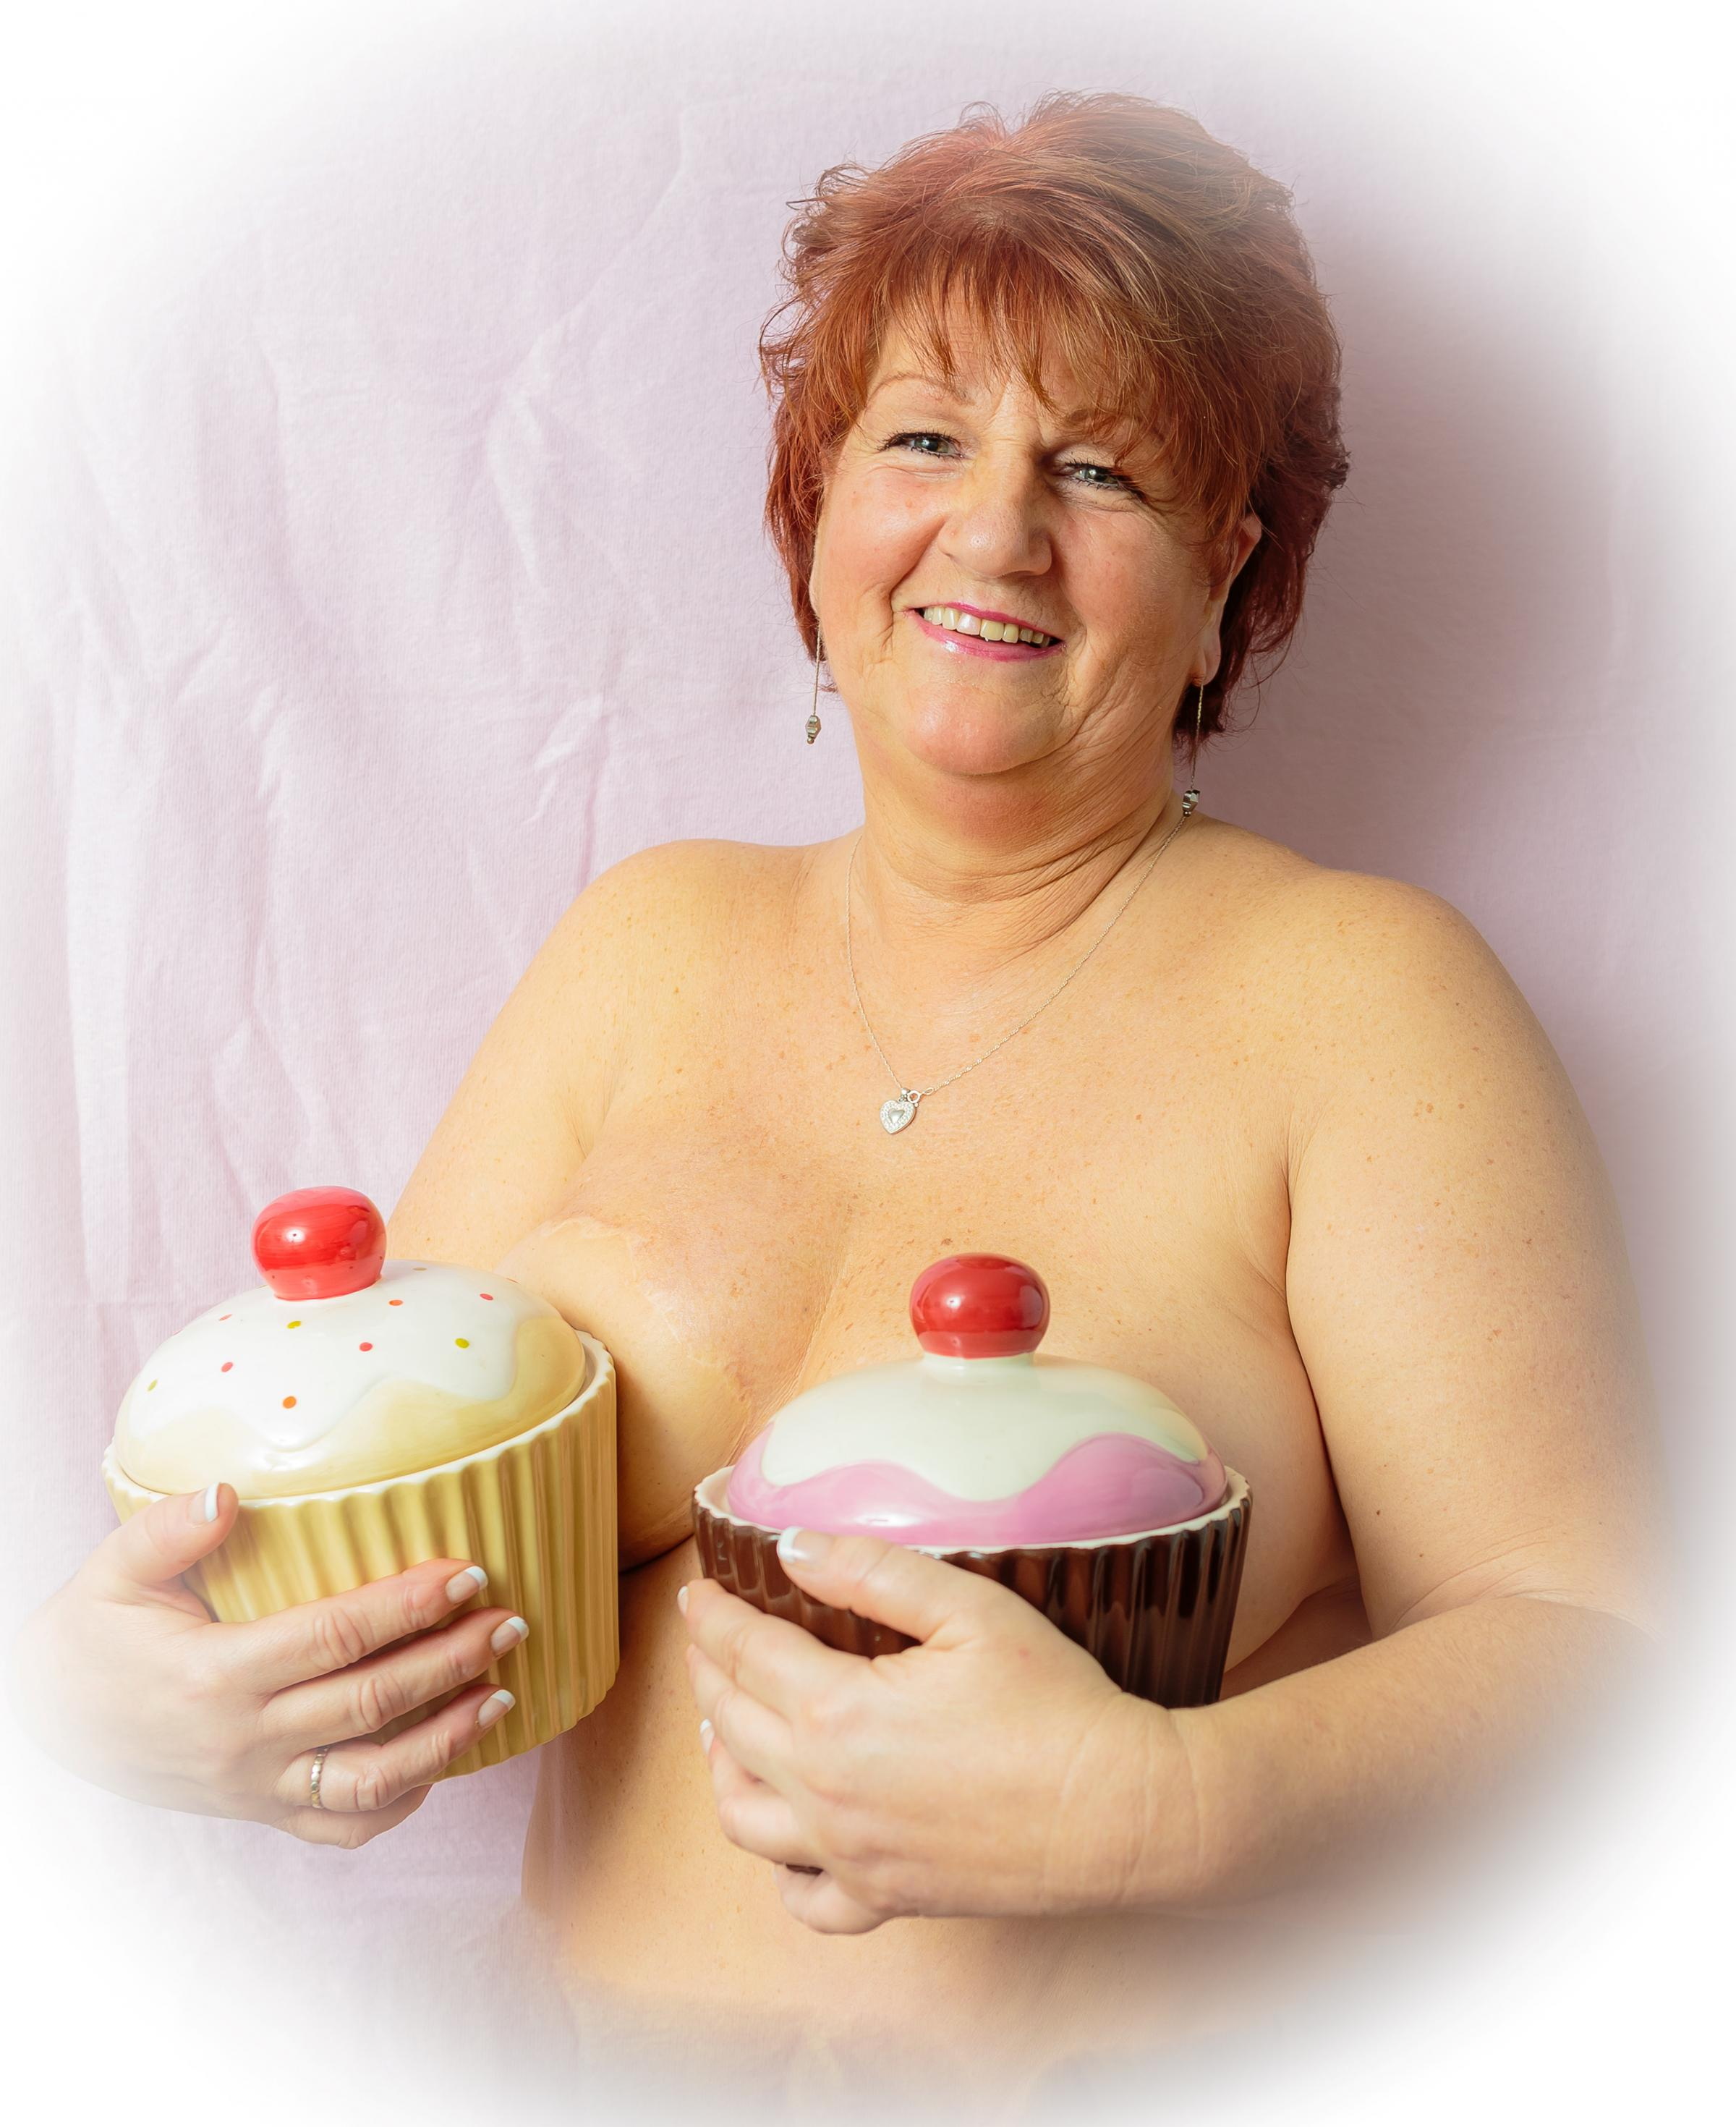 Breast cancer survivor Jacky organises a national Booby Cupcake Week